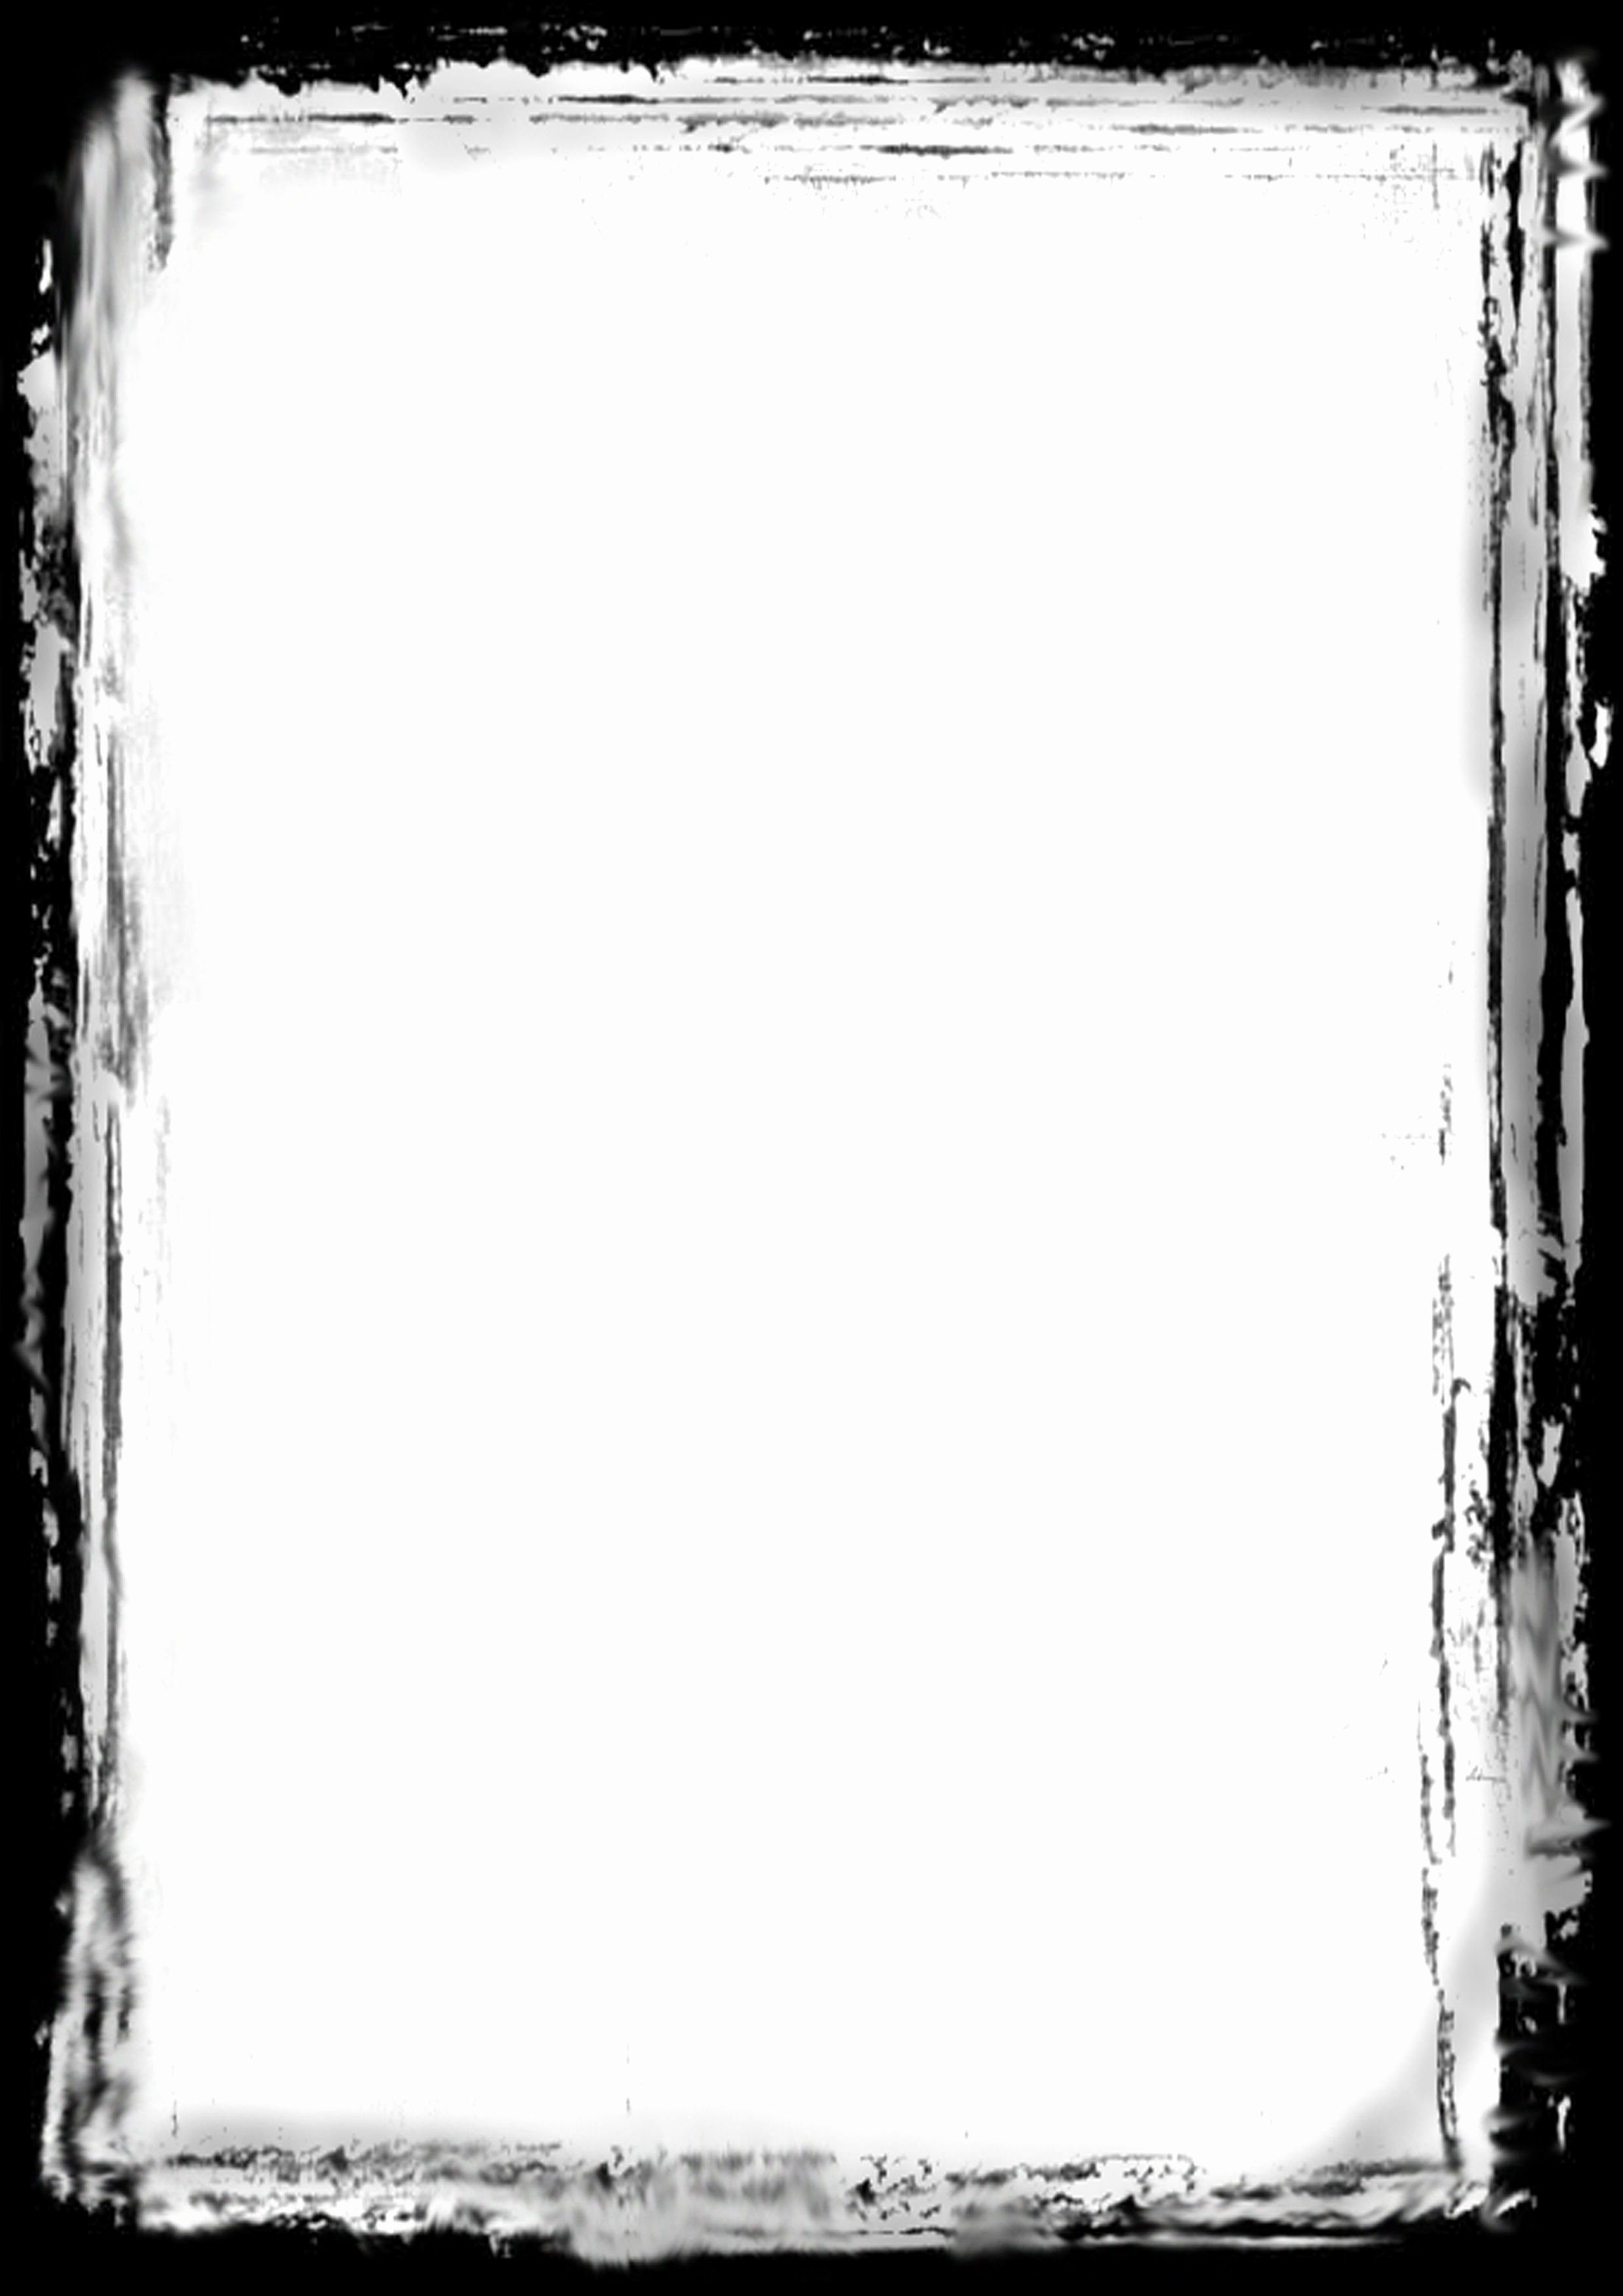 Free Download Borders and Frames for Shop